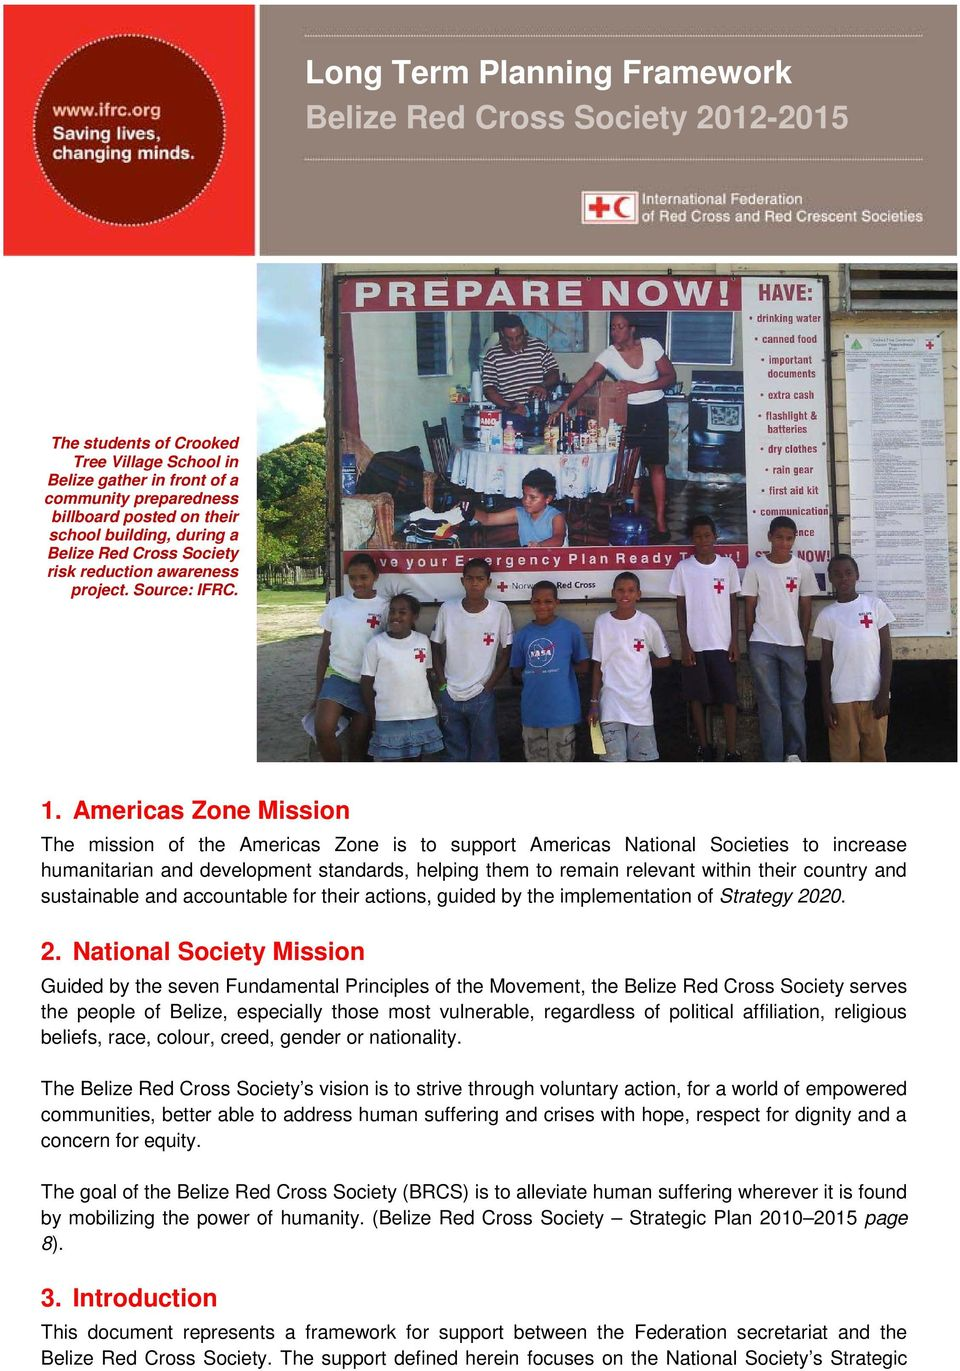 Americas Zone Mission The mission of the Americas Zone is to support Americas National Societies to increase humanitarian and development standards, helping them to remain relevant within their